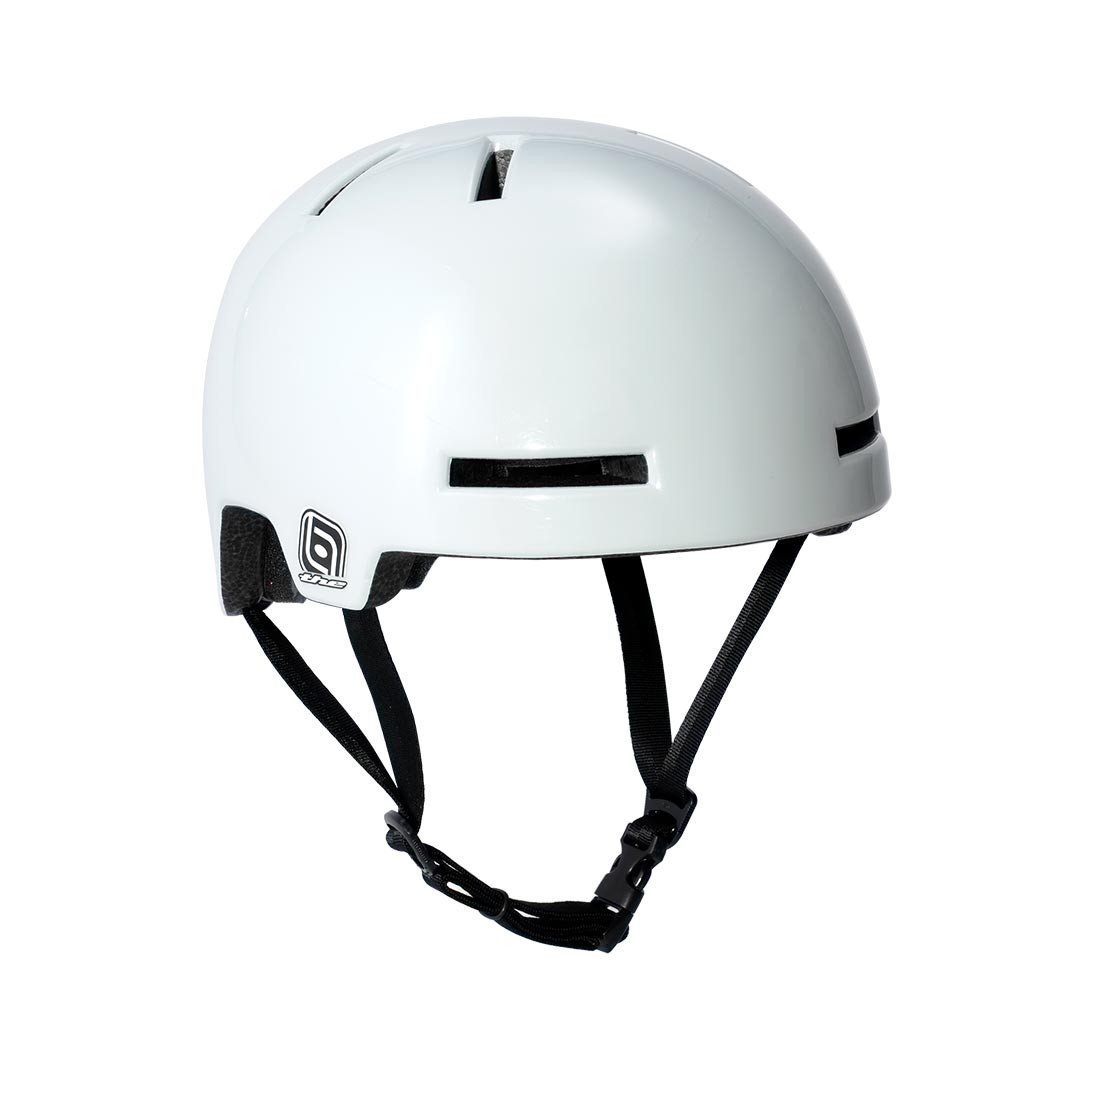 Medium THE Industries Bicycle Helmets